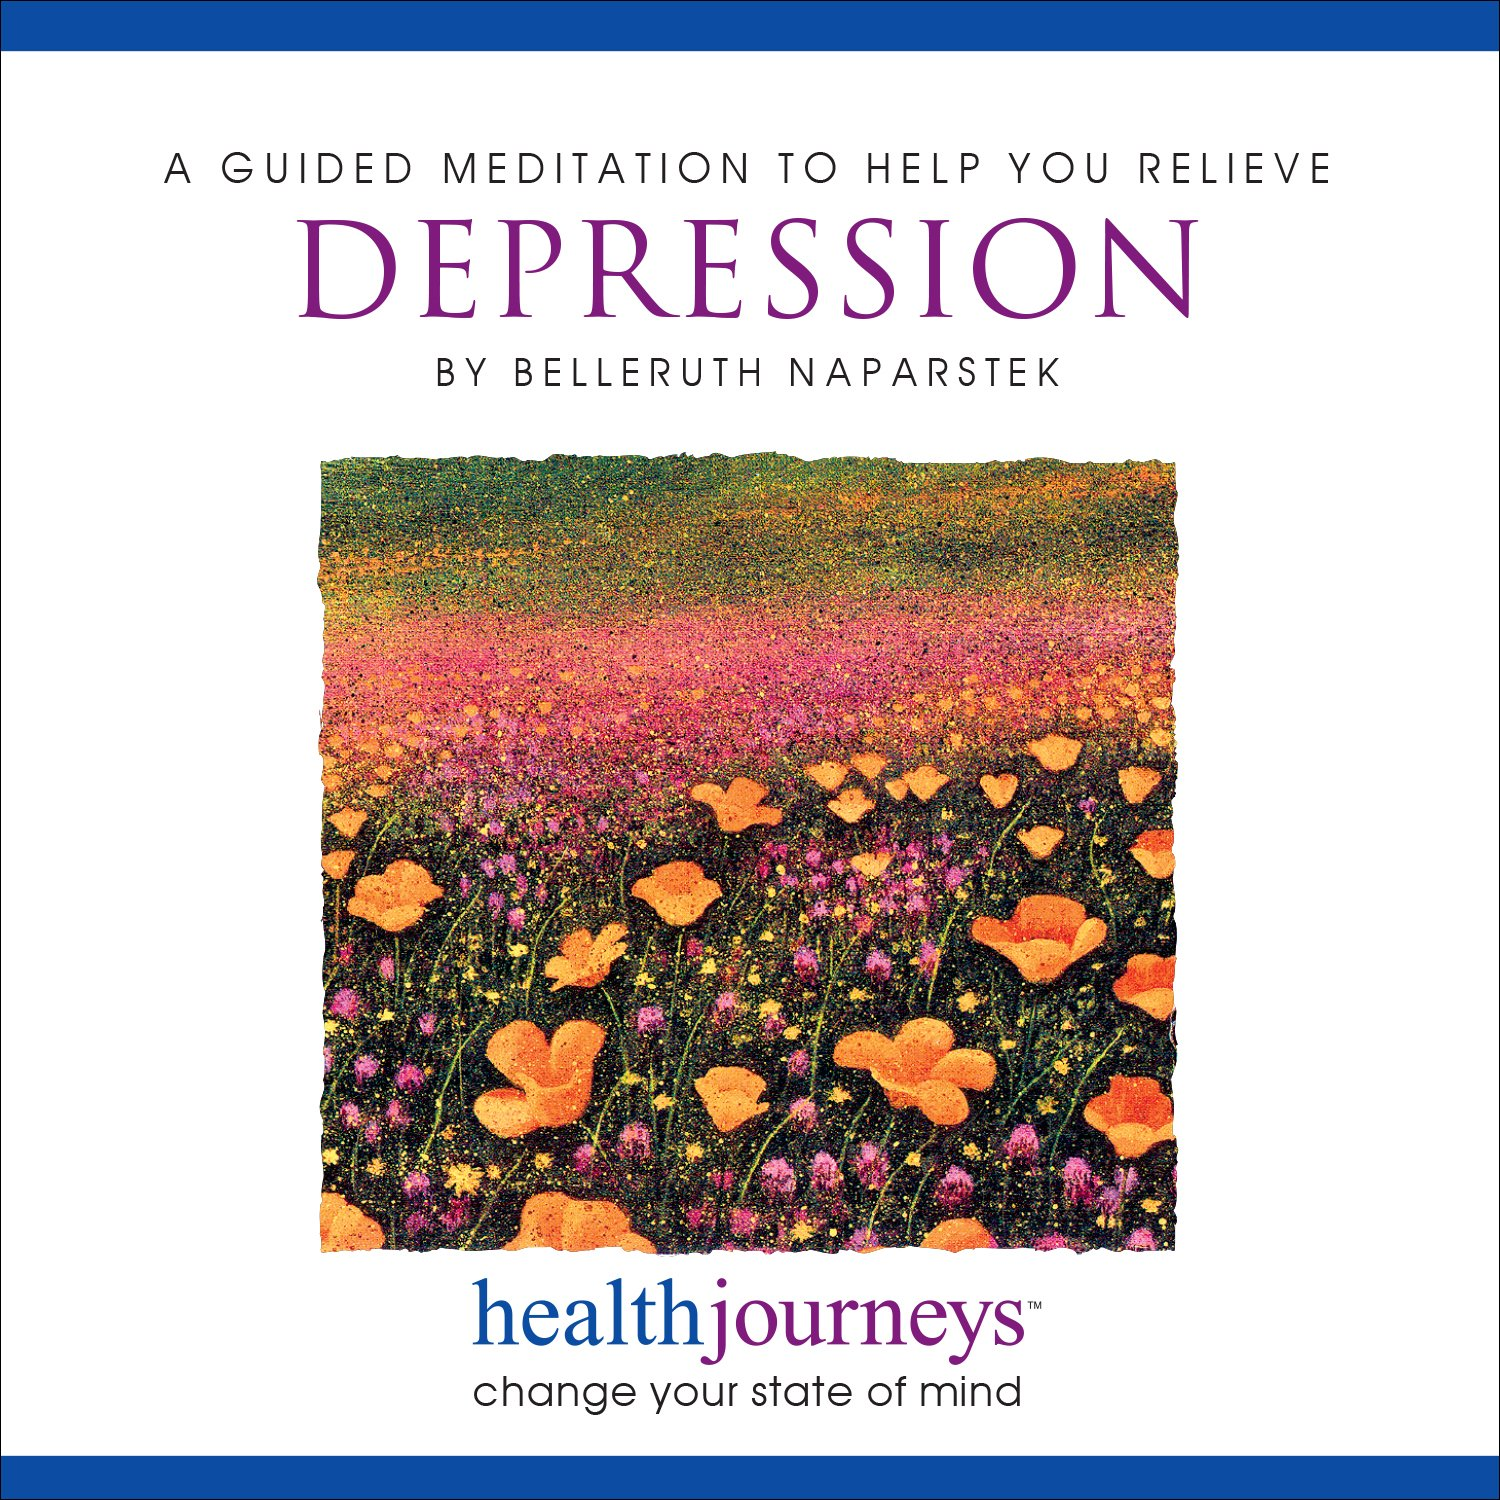 A Guided Meditation to He Relieve Depression- Guided Imagery to Reduce  Negative Thinking, Self-Criticism, Discouragement, and Improve Mood, Hope,